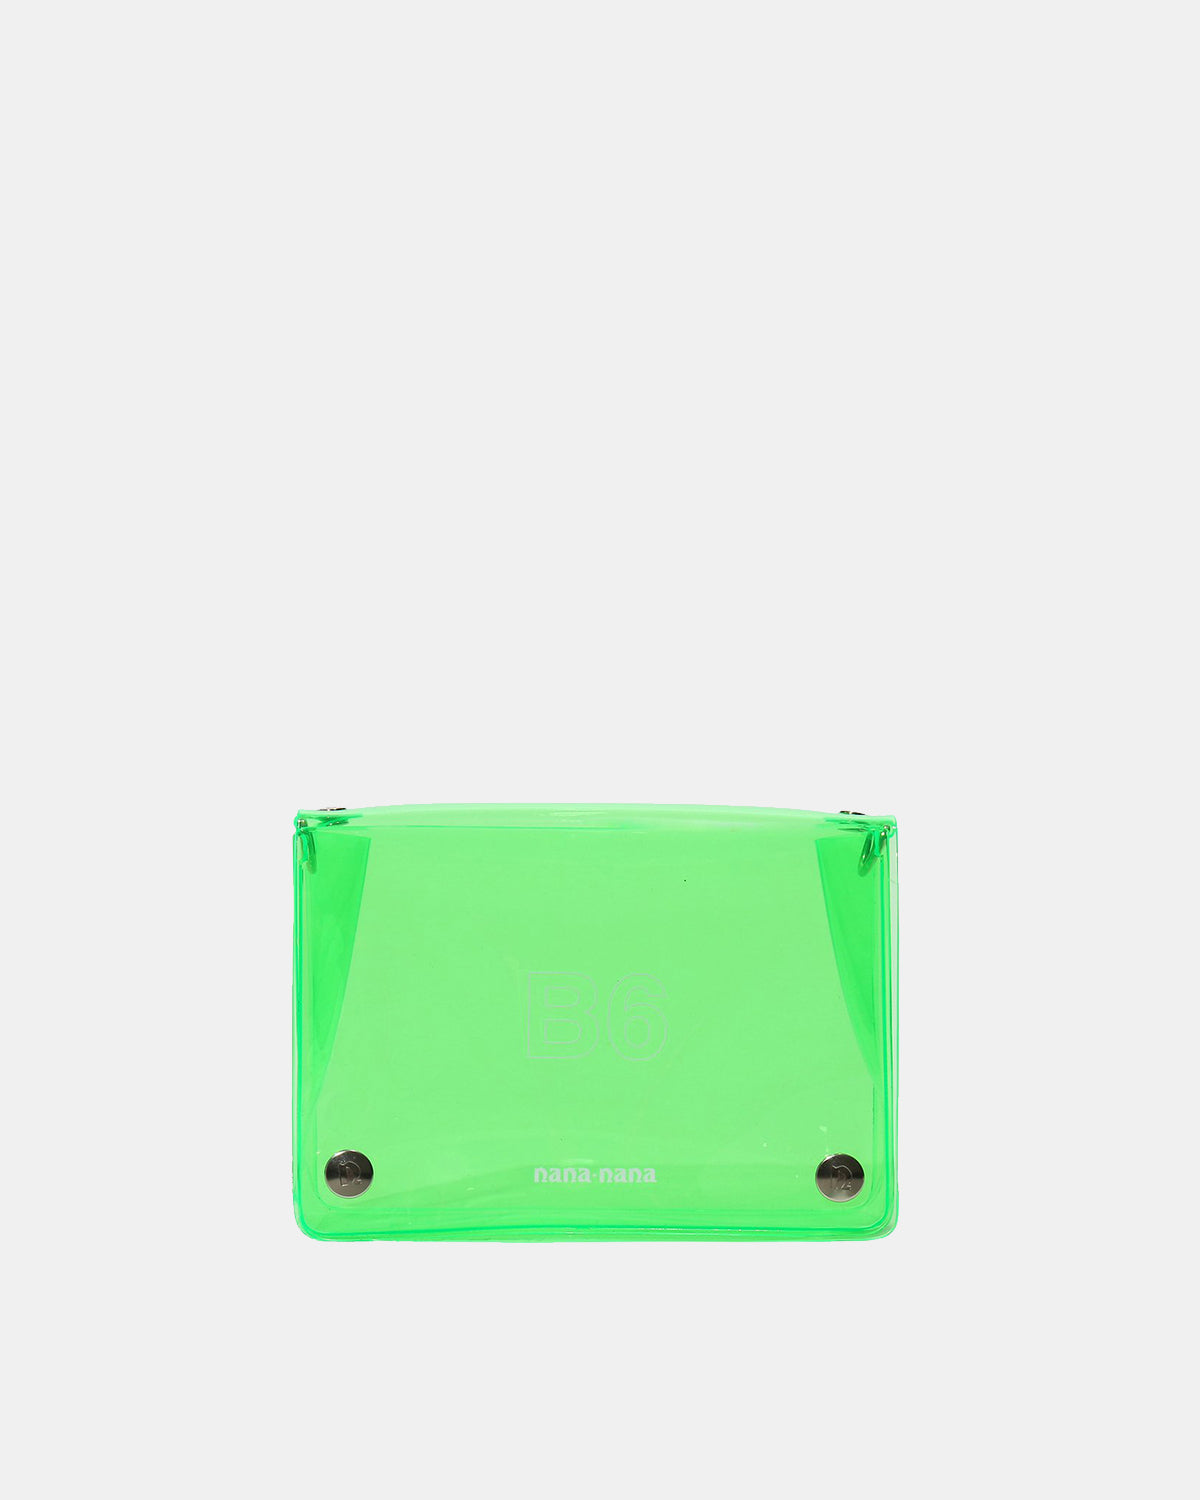 nana-nana - B6 PVC Bag (Neon Green)